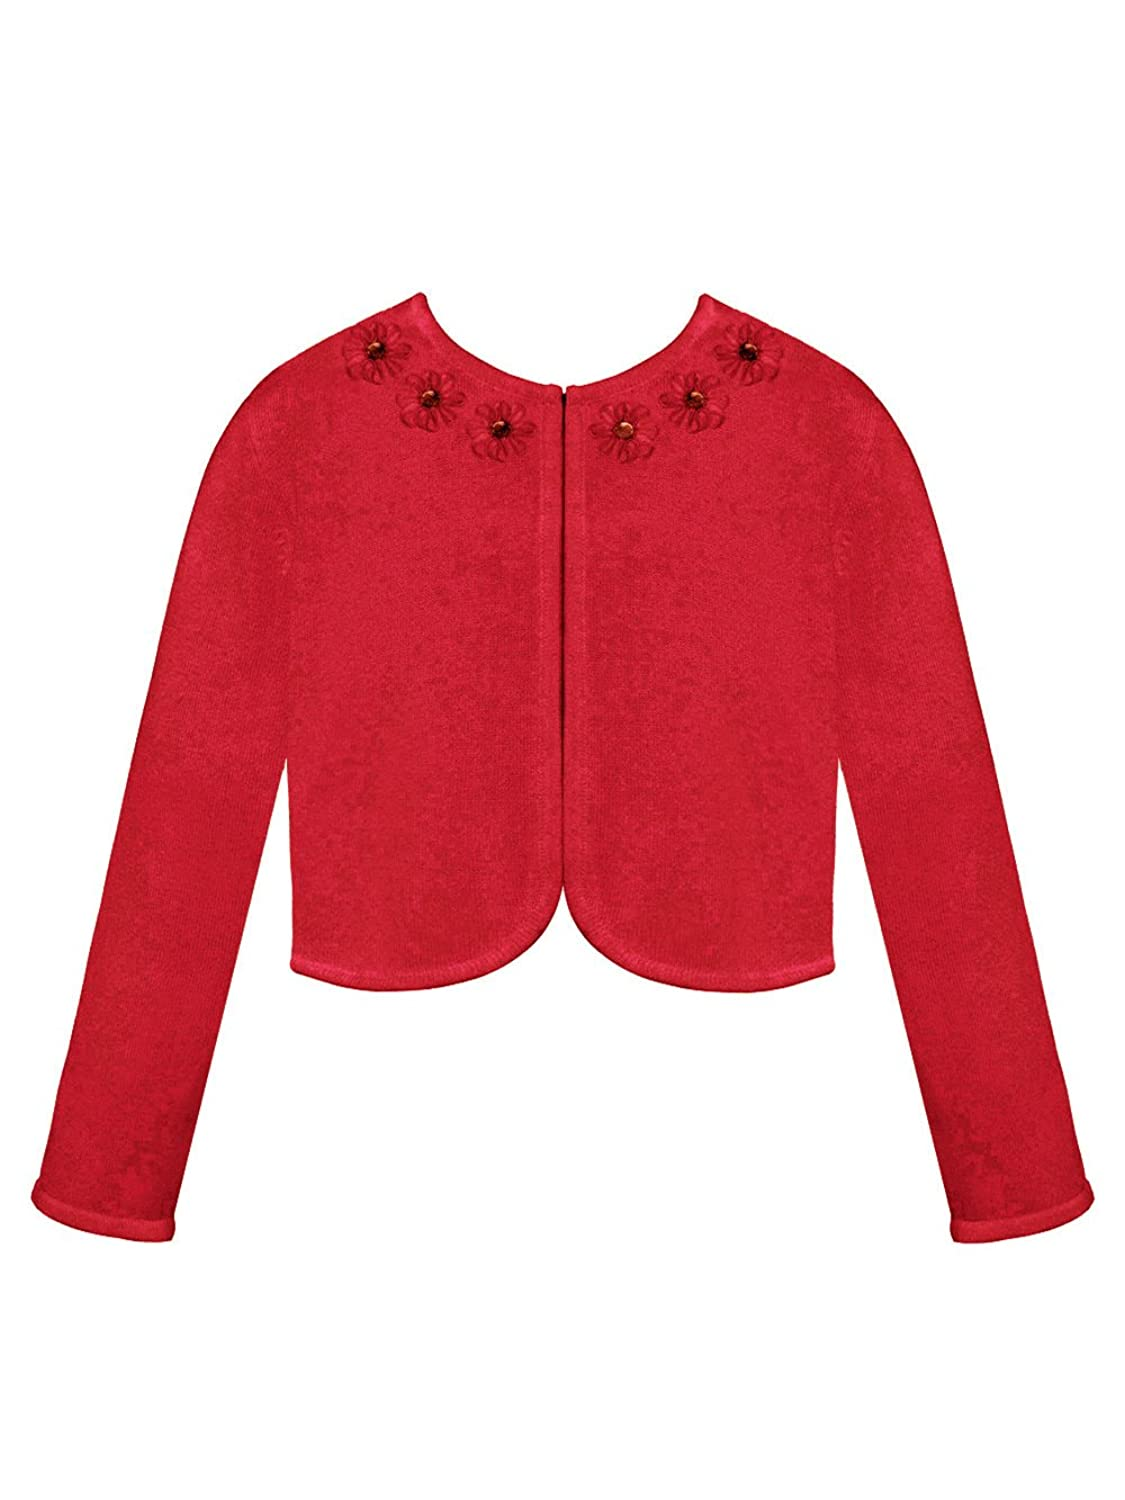 18M-6Y Baly Selective Girls Knitted Cardigan Sweater Button Down Coat Outwear